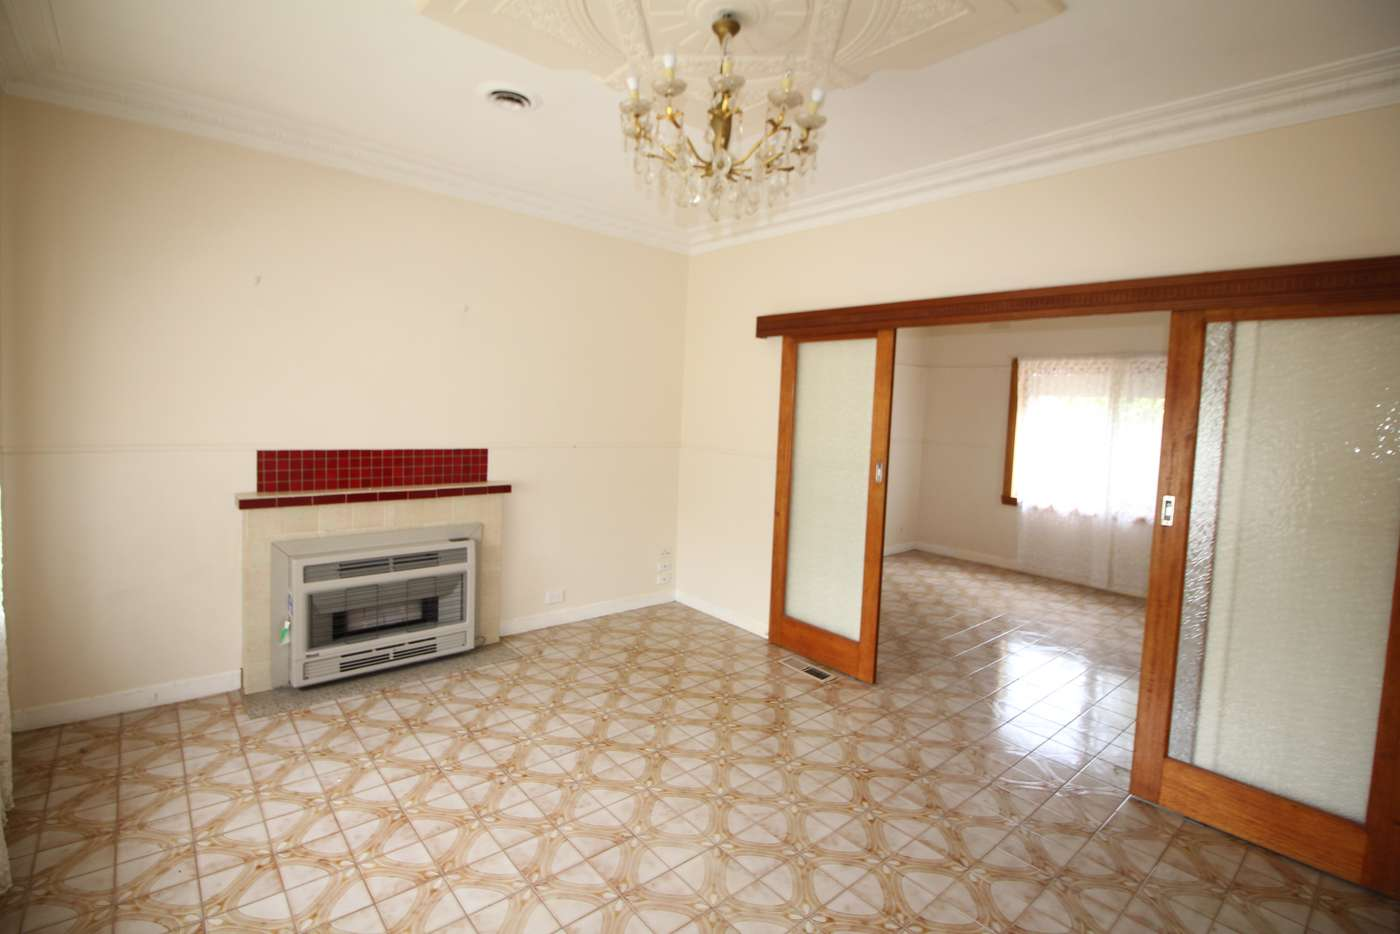 Main view of Homely house listing, 1/19 Synnott Street, Hamlyn Heights VIC 3215